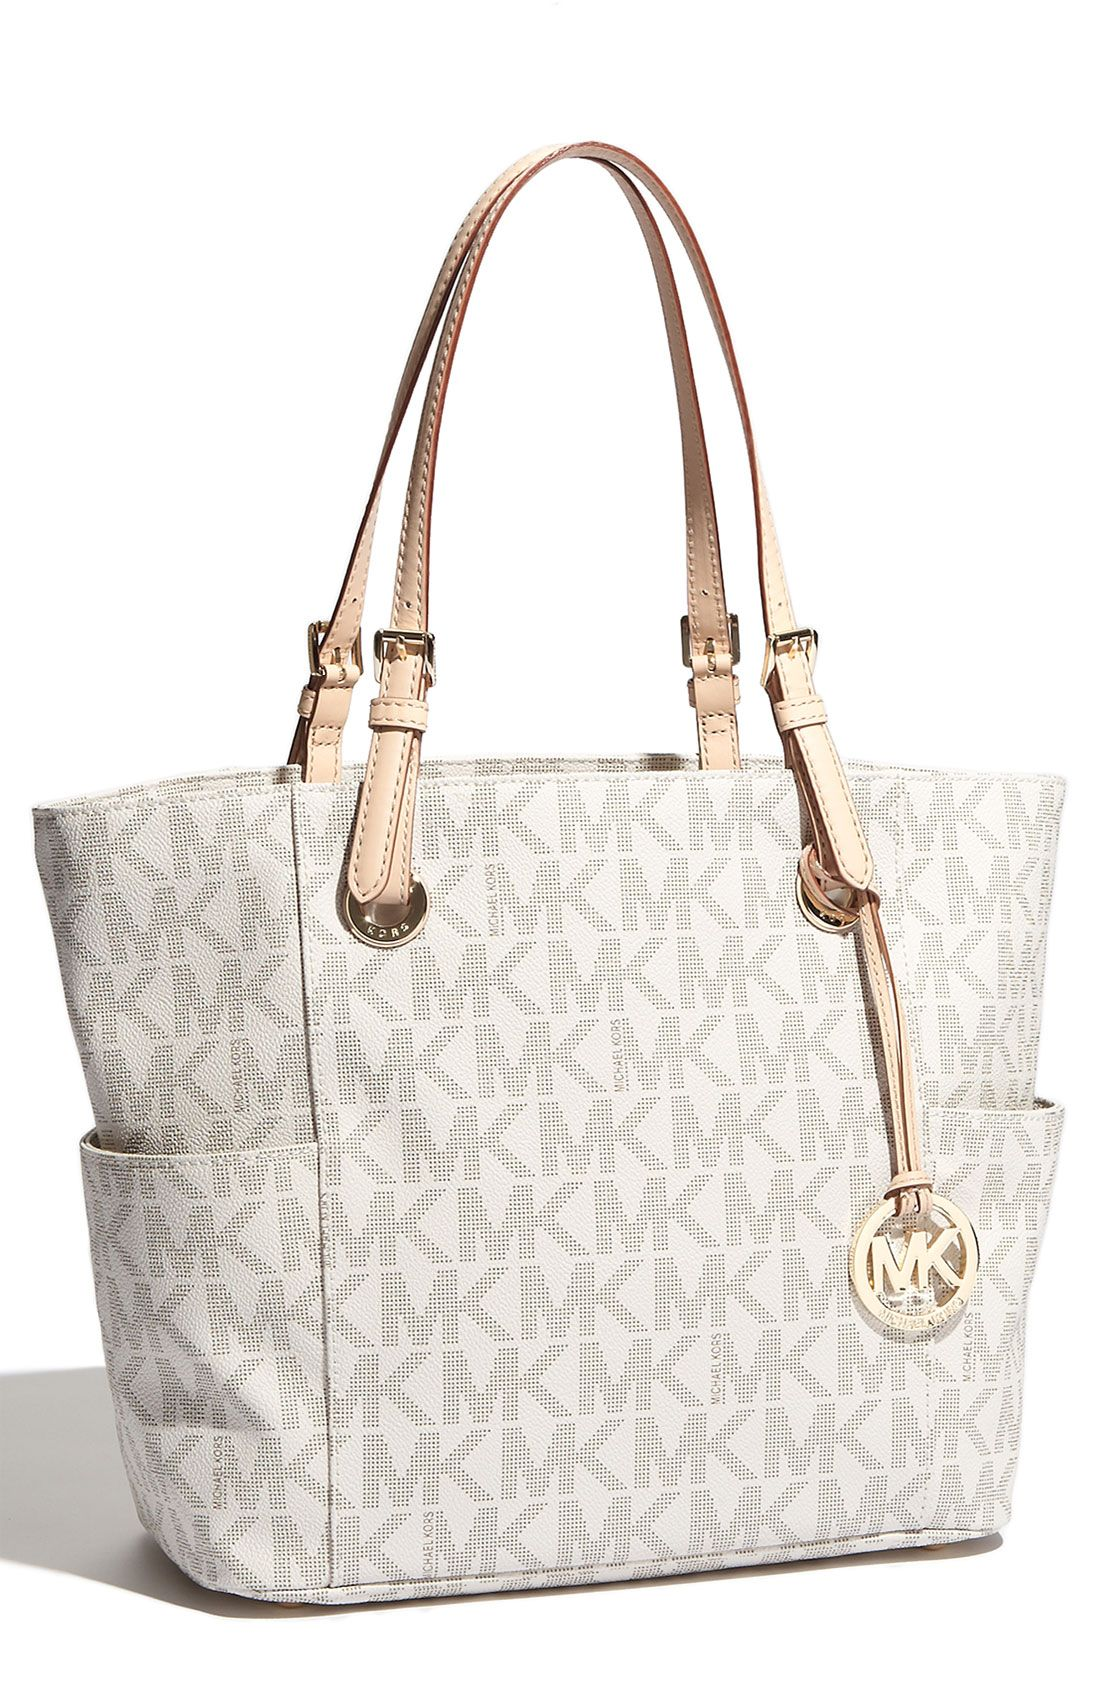 0ba820b8a4b8 The perfect travel companion | Michael Kors 'Jet Set Signature' tote ...